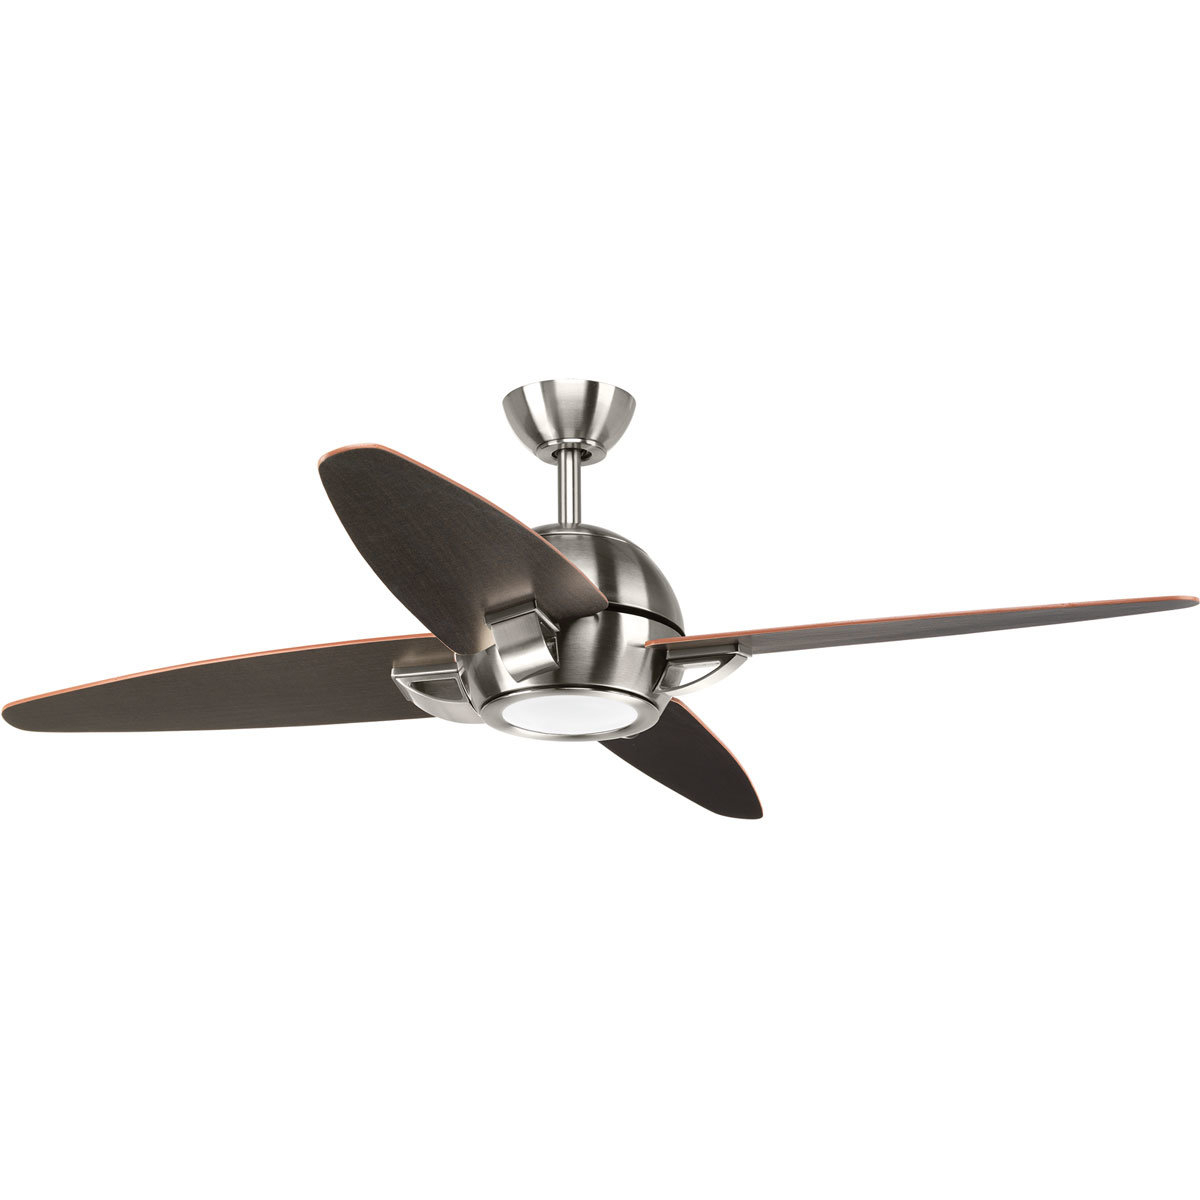 "54"" Ming 4 Blade Led Ceiling Fan With Remote With Widely Used Cranbrook 4 Blade Ceiling Fans (Gallery 13 of 20)"